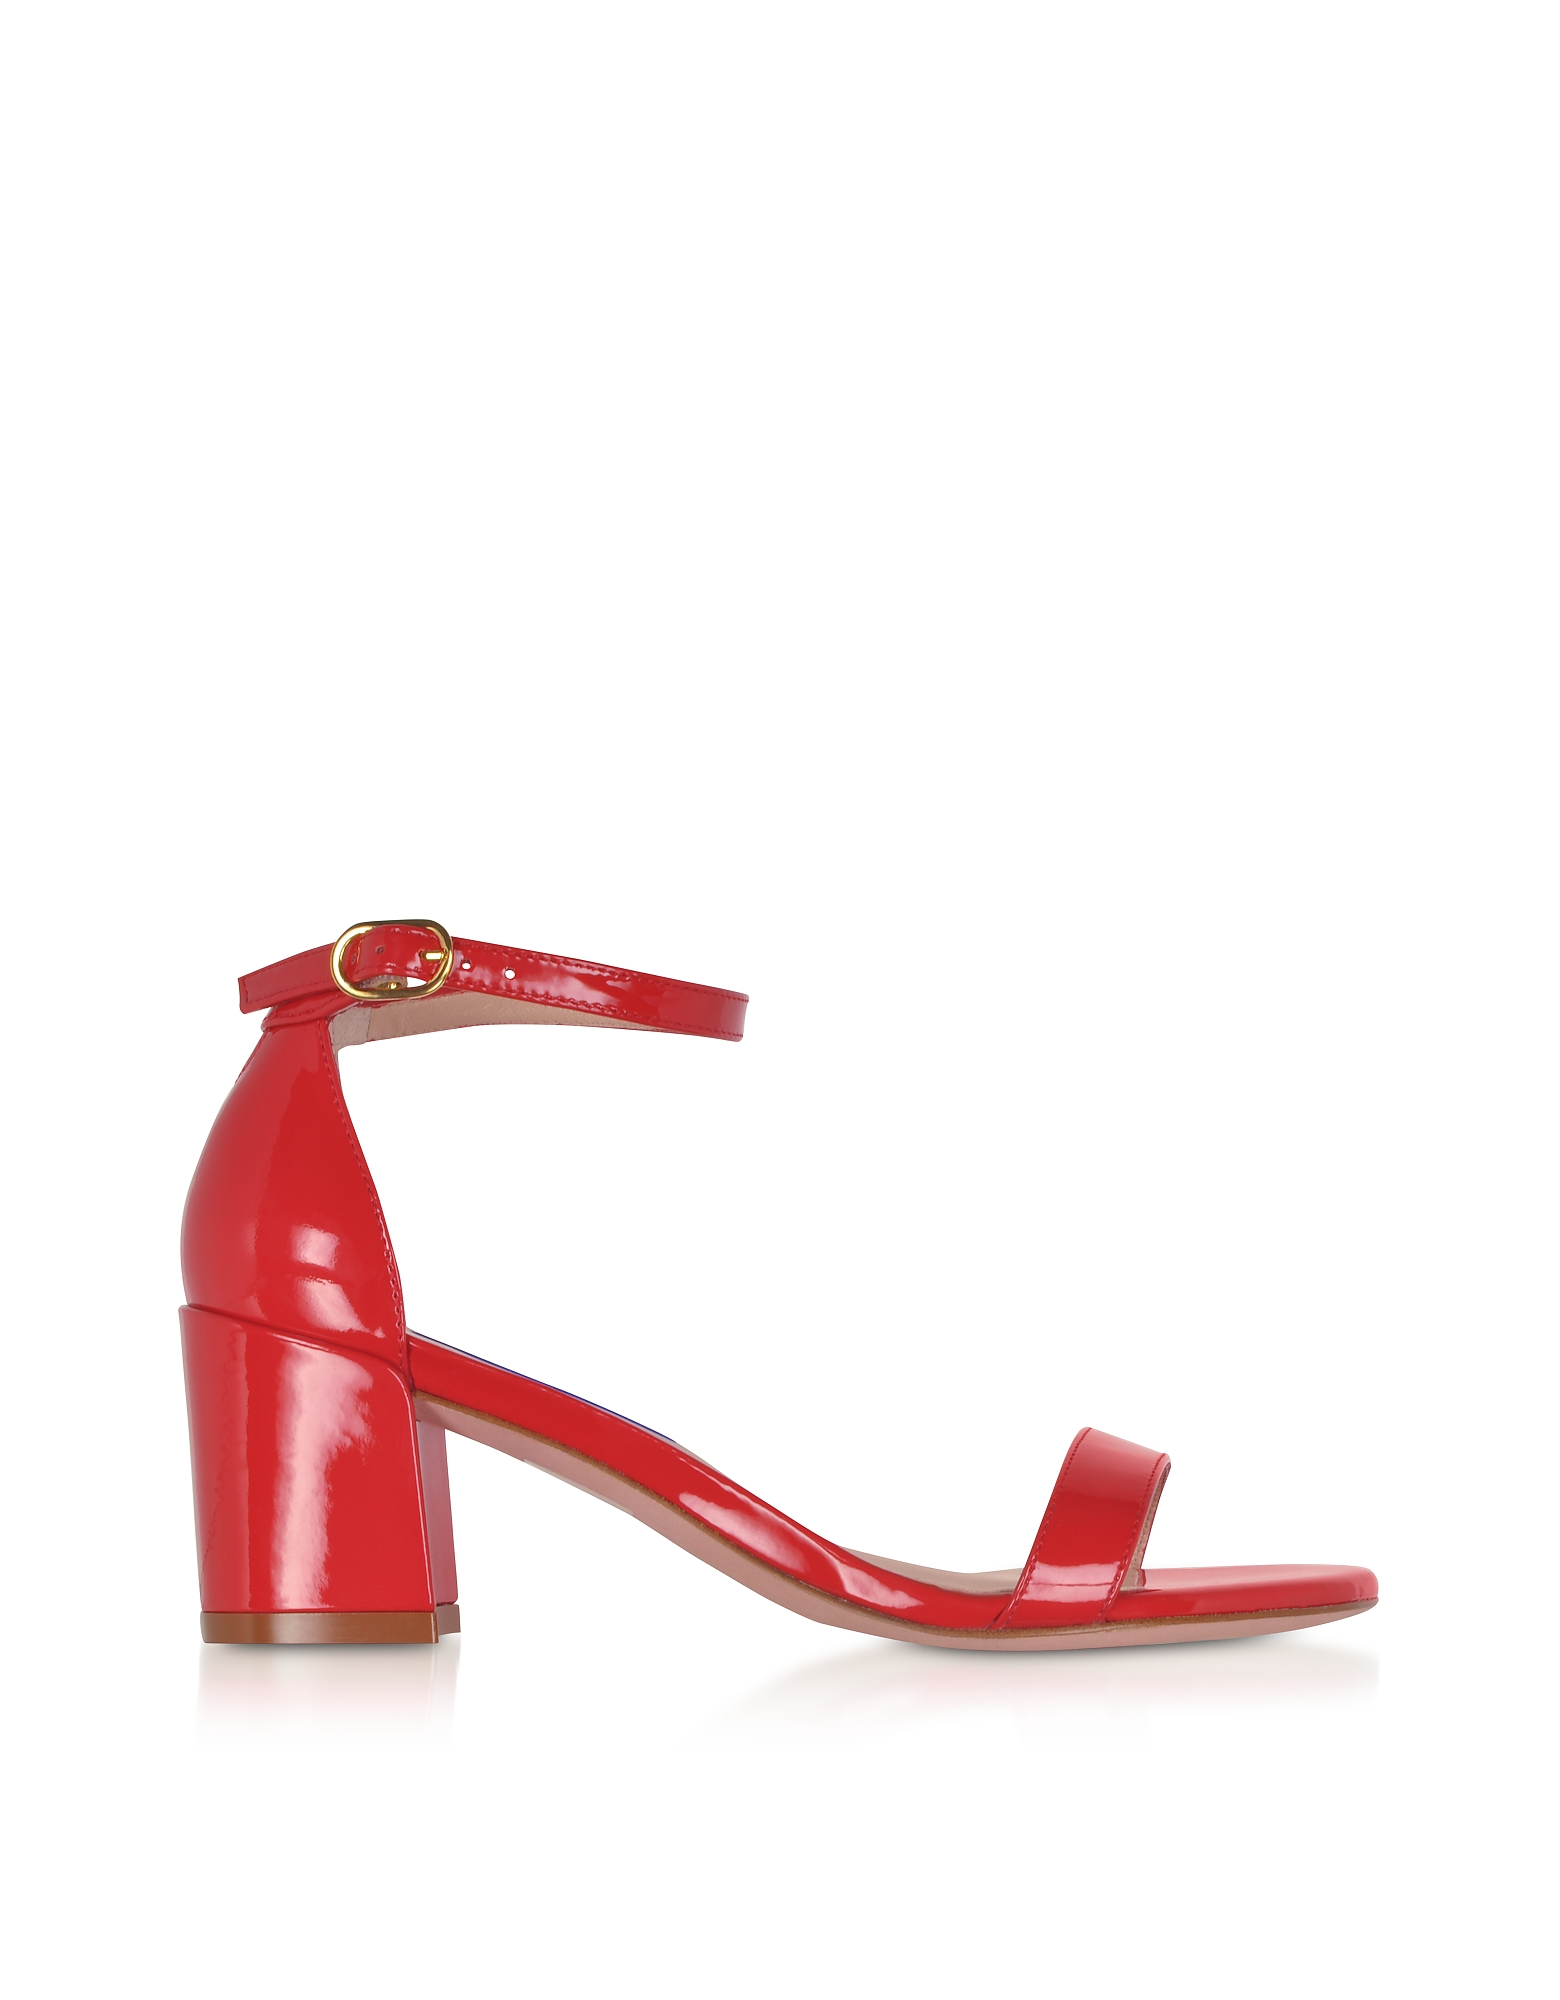 Stuart Weitzman Shoes, Simple Follow Me Red Patent Leather Sandals